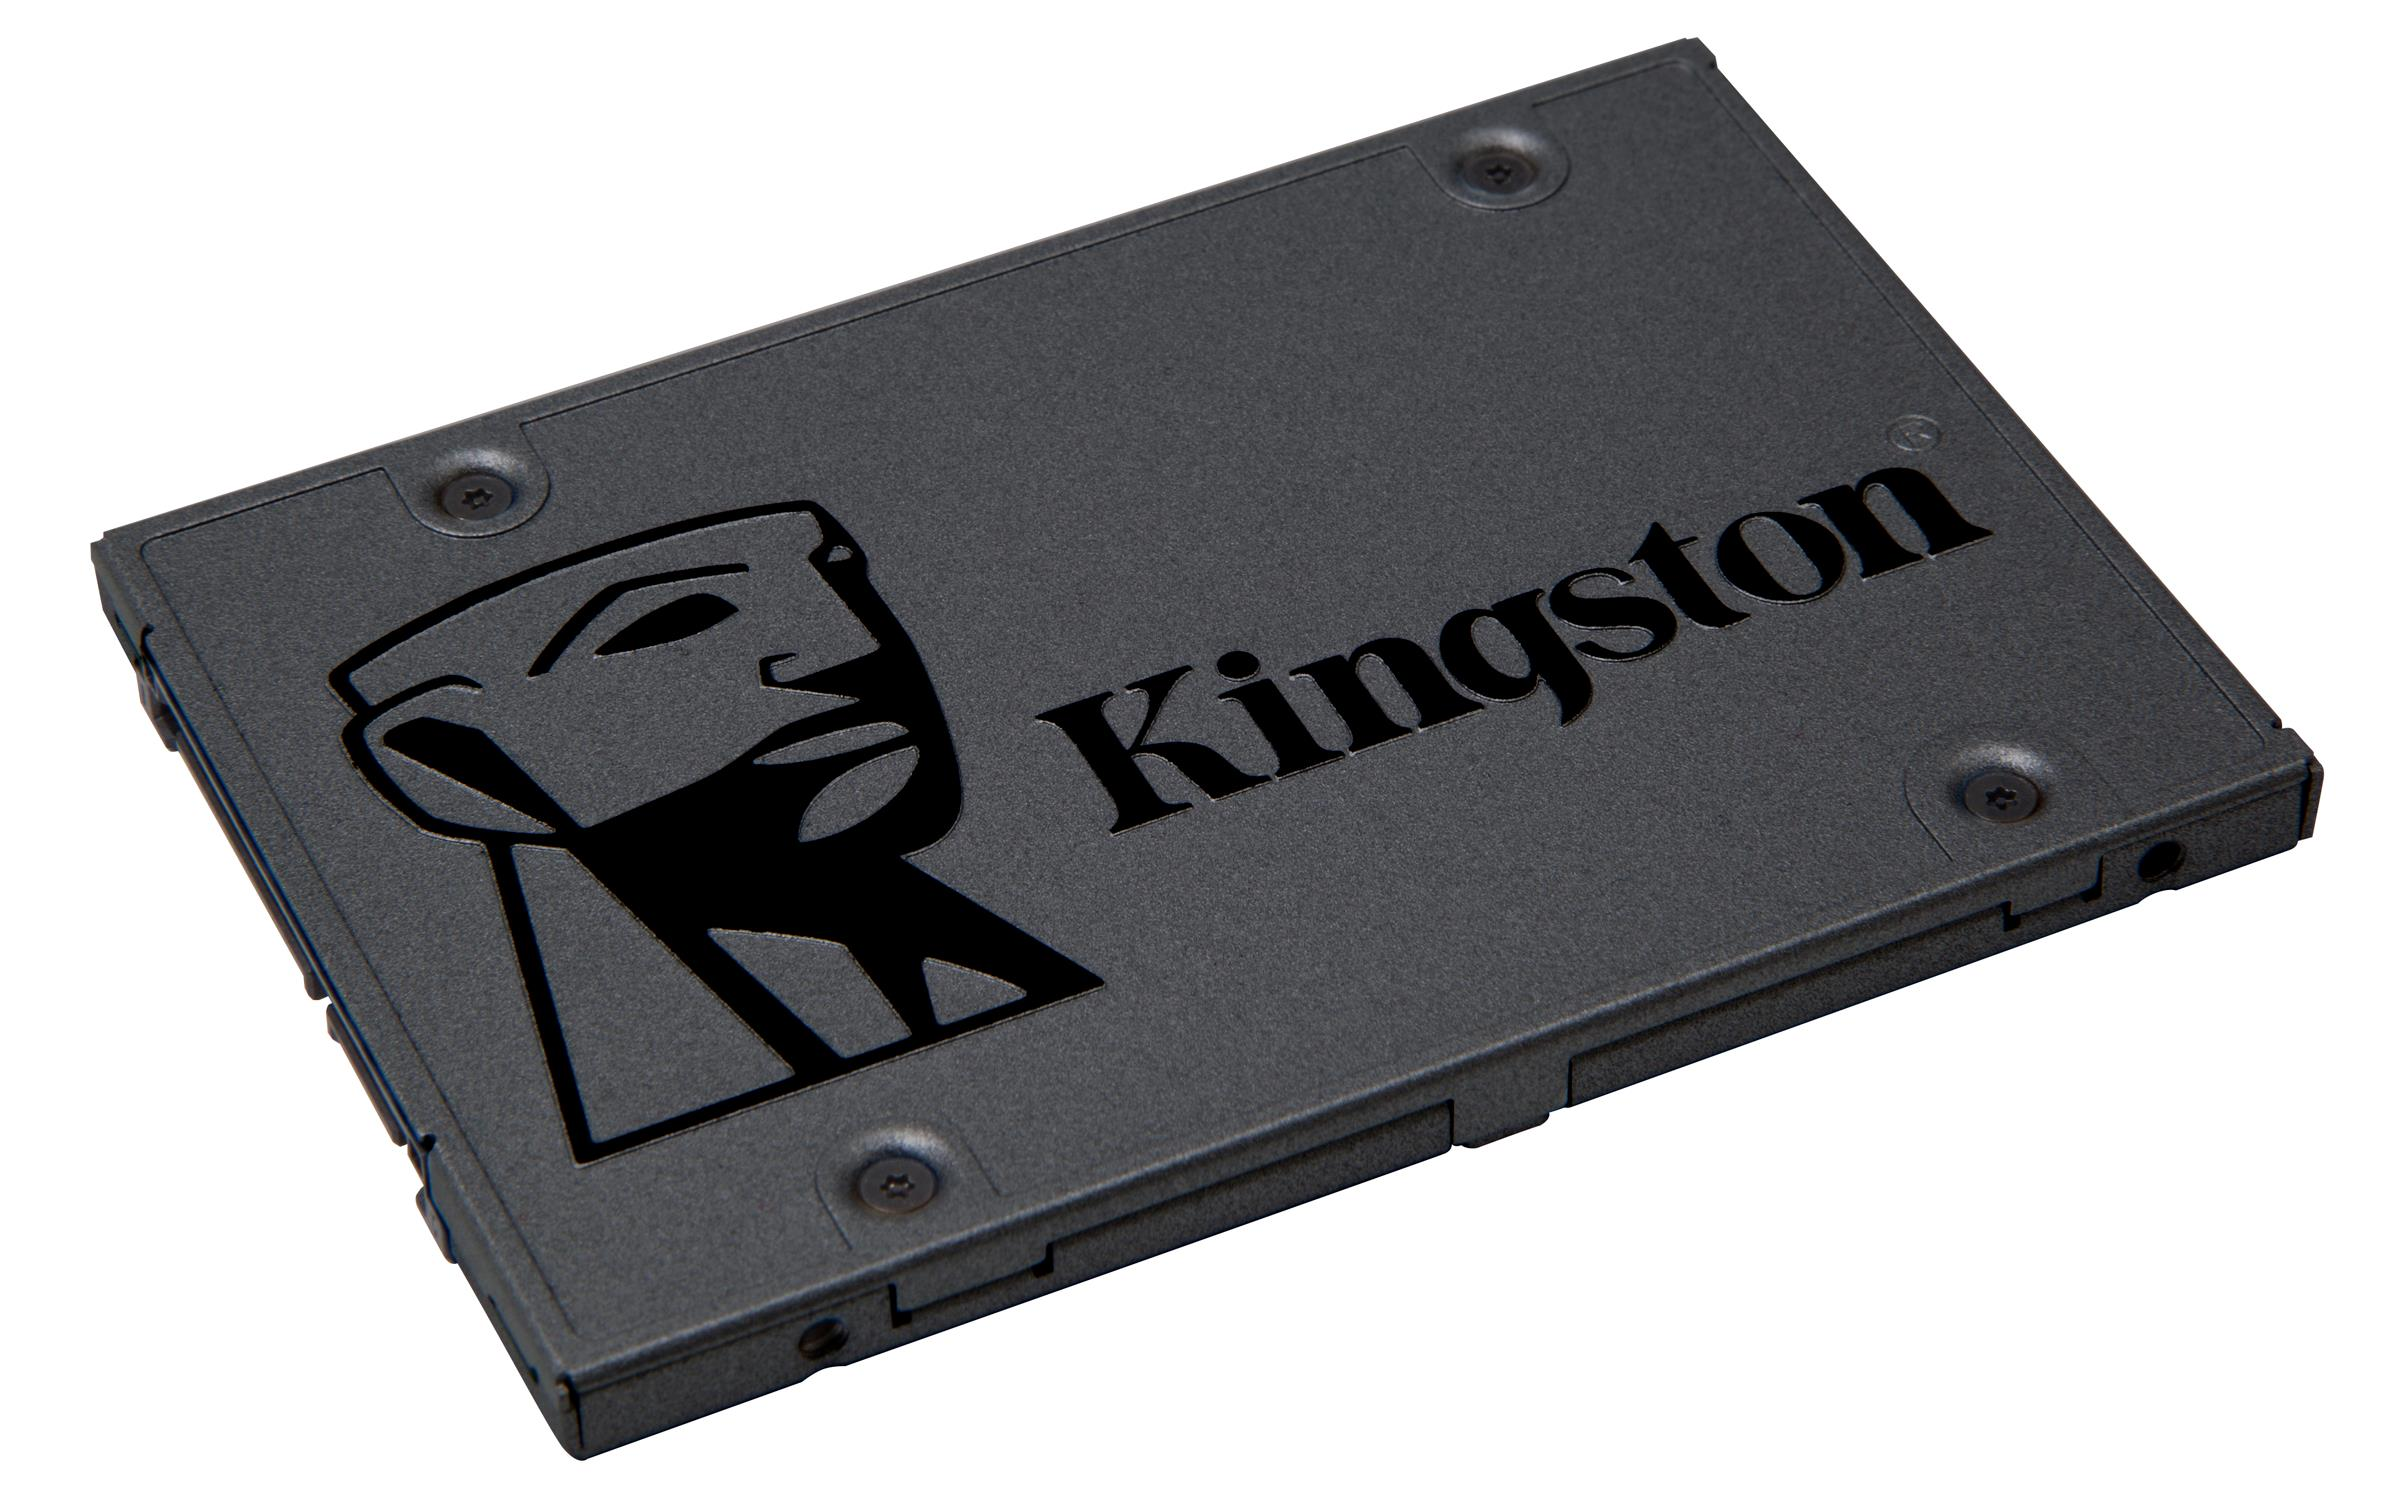 Kingston SSDNow A400 (240GB) SATA 3 2.5 inch Solid State Drive